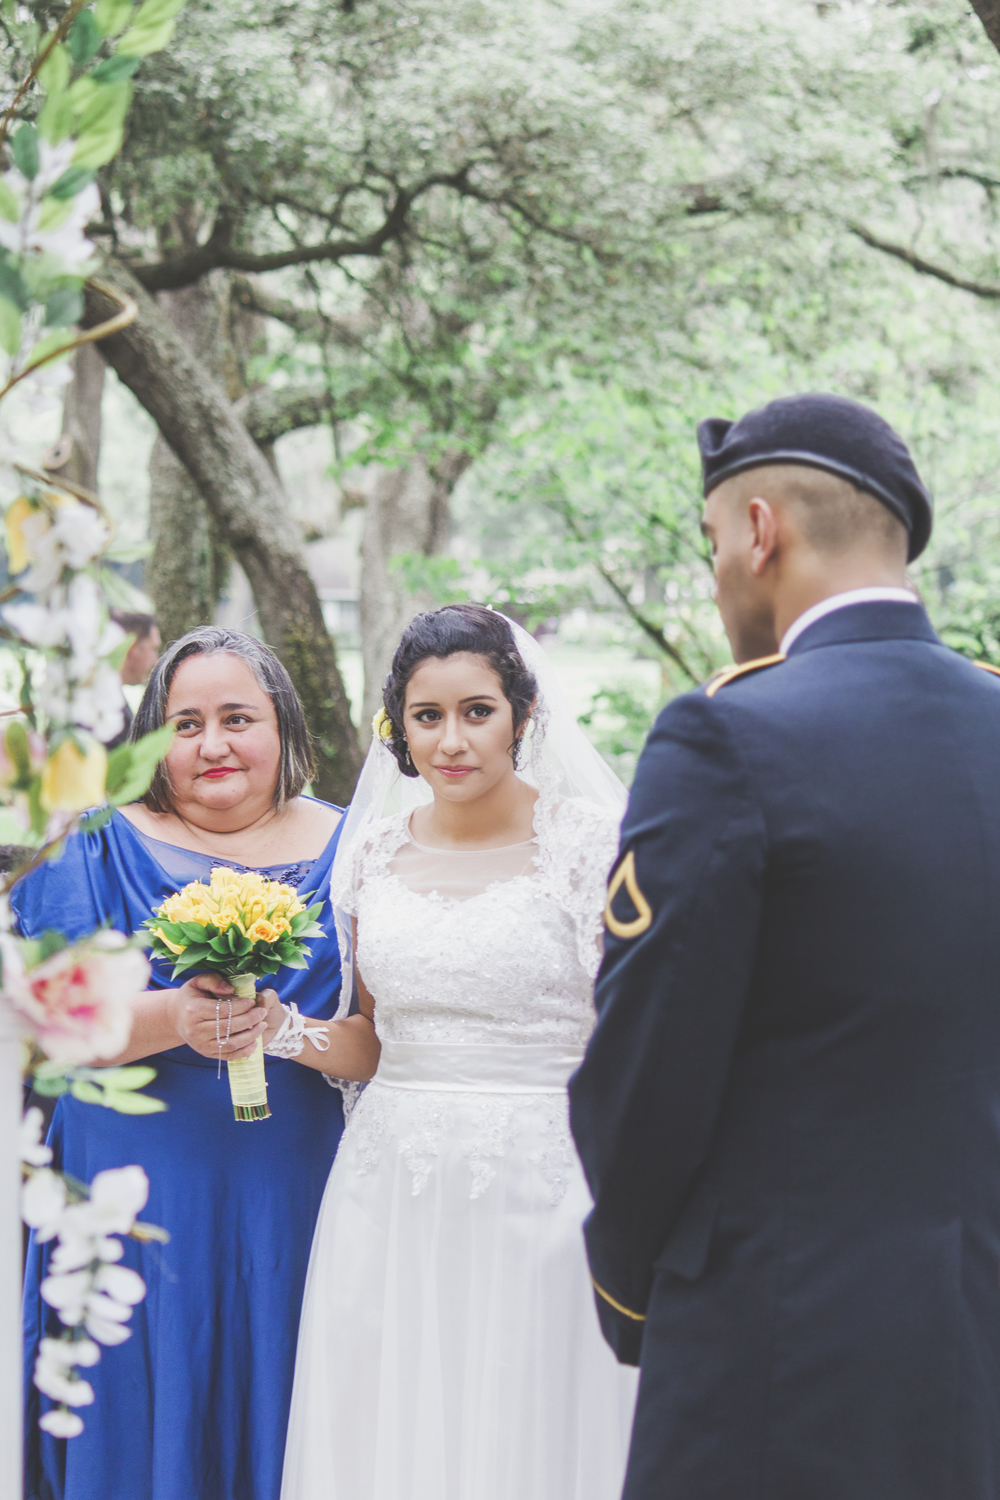 Laura + Kelvin - Tampa Wedding Photography - Tampa Wedding Photographer - Emily & Co Photography - Military Garden Wedding